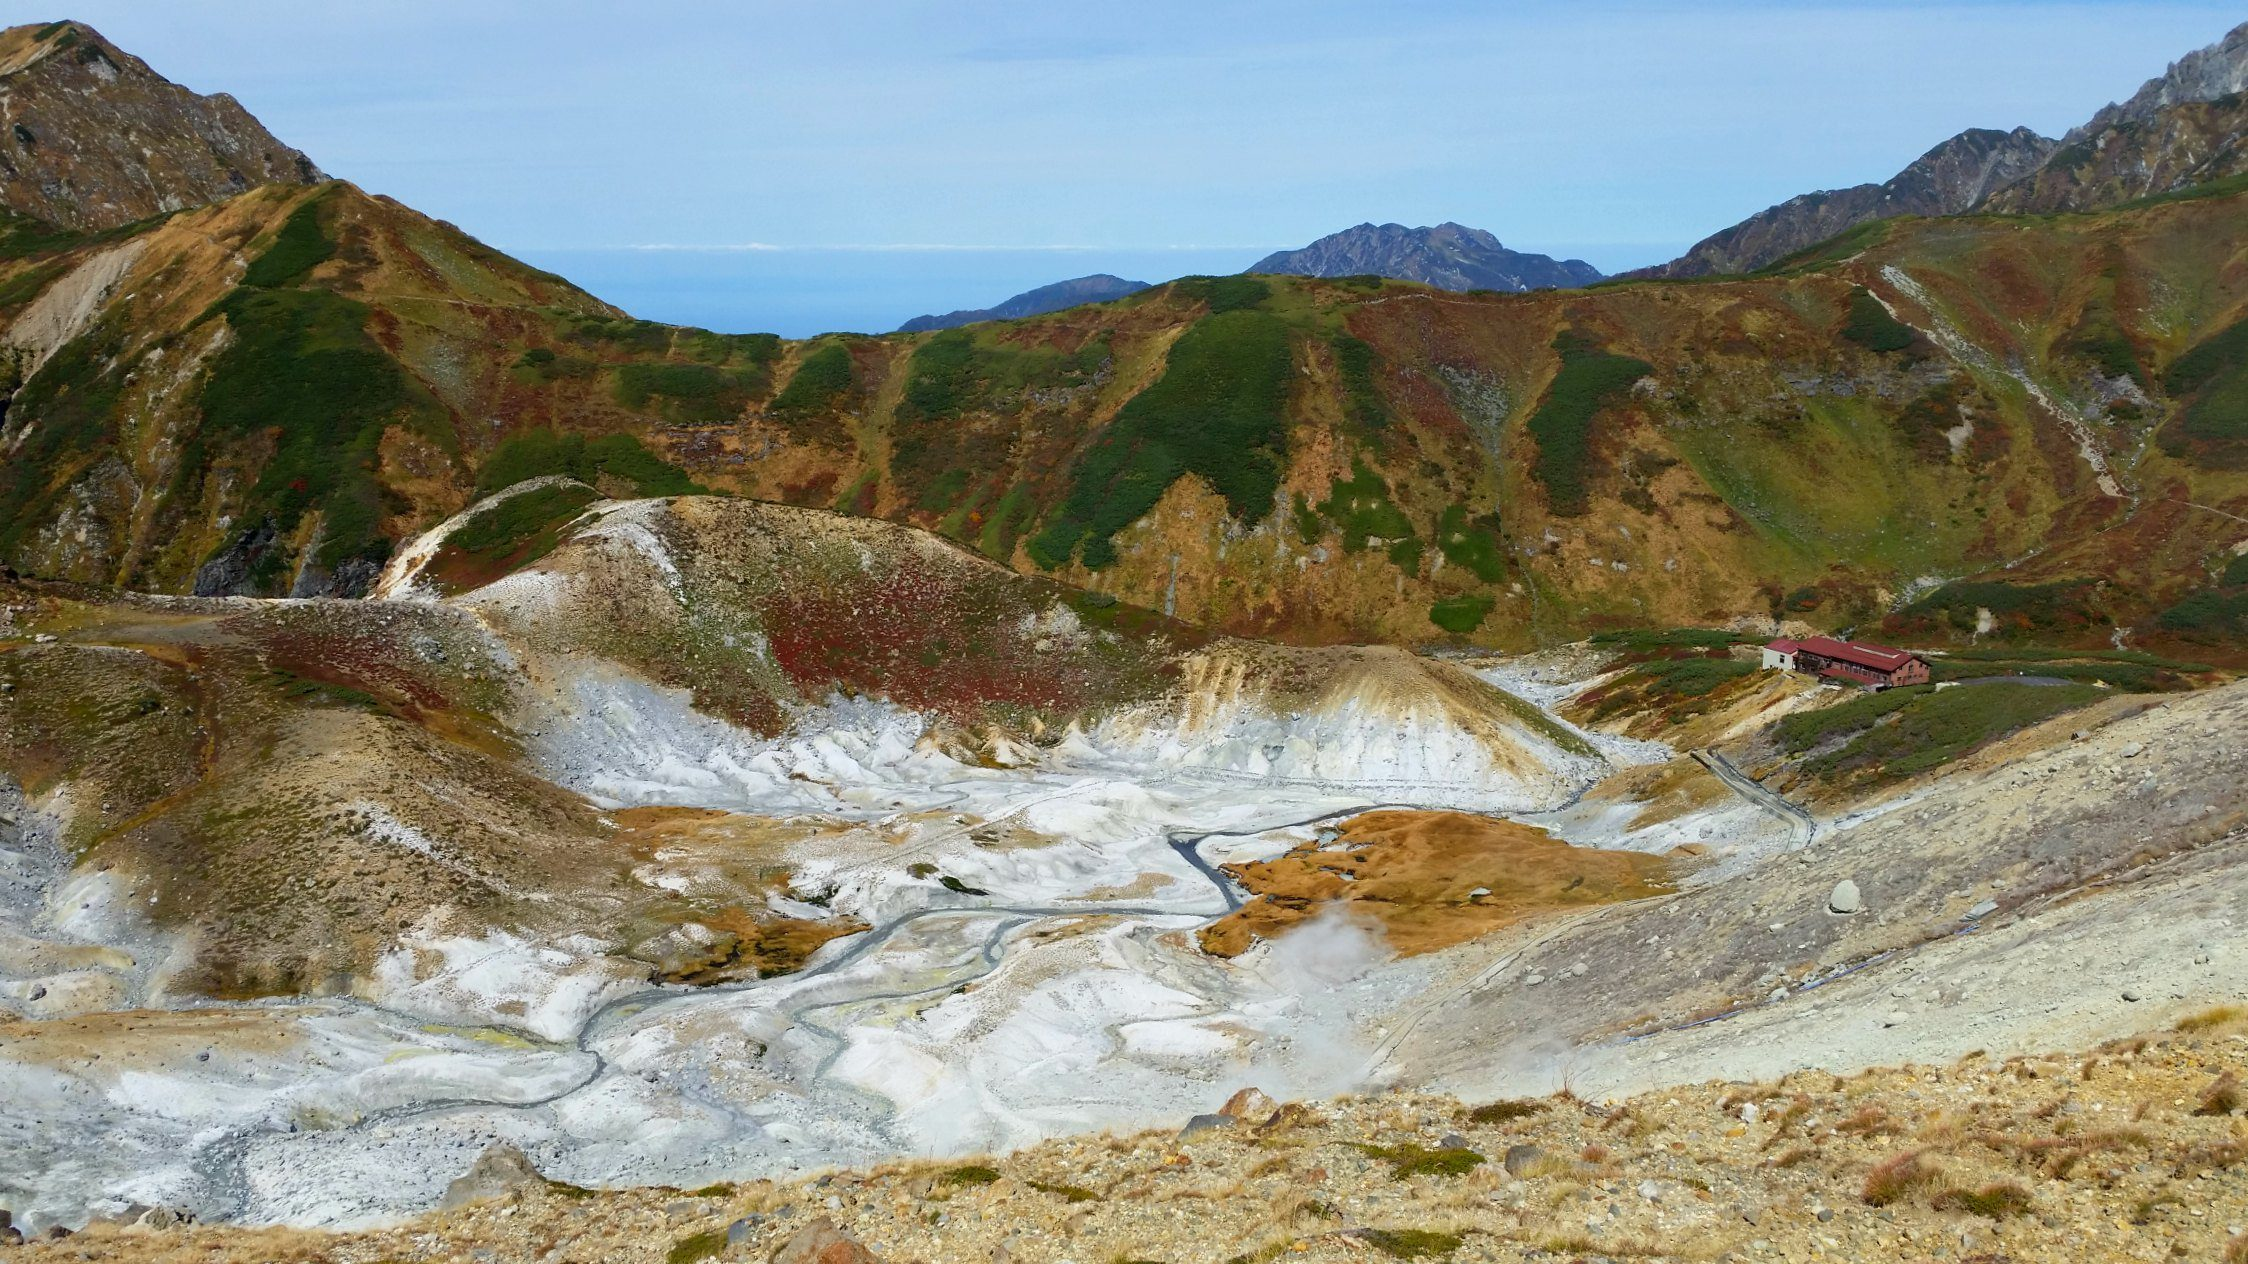 Hell Valley in Murodo on the Tateyama Kurobe Alpine Route in Japan